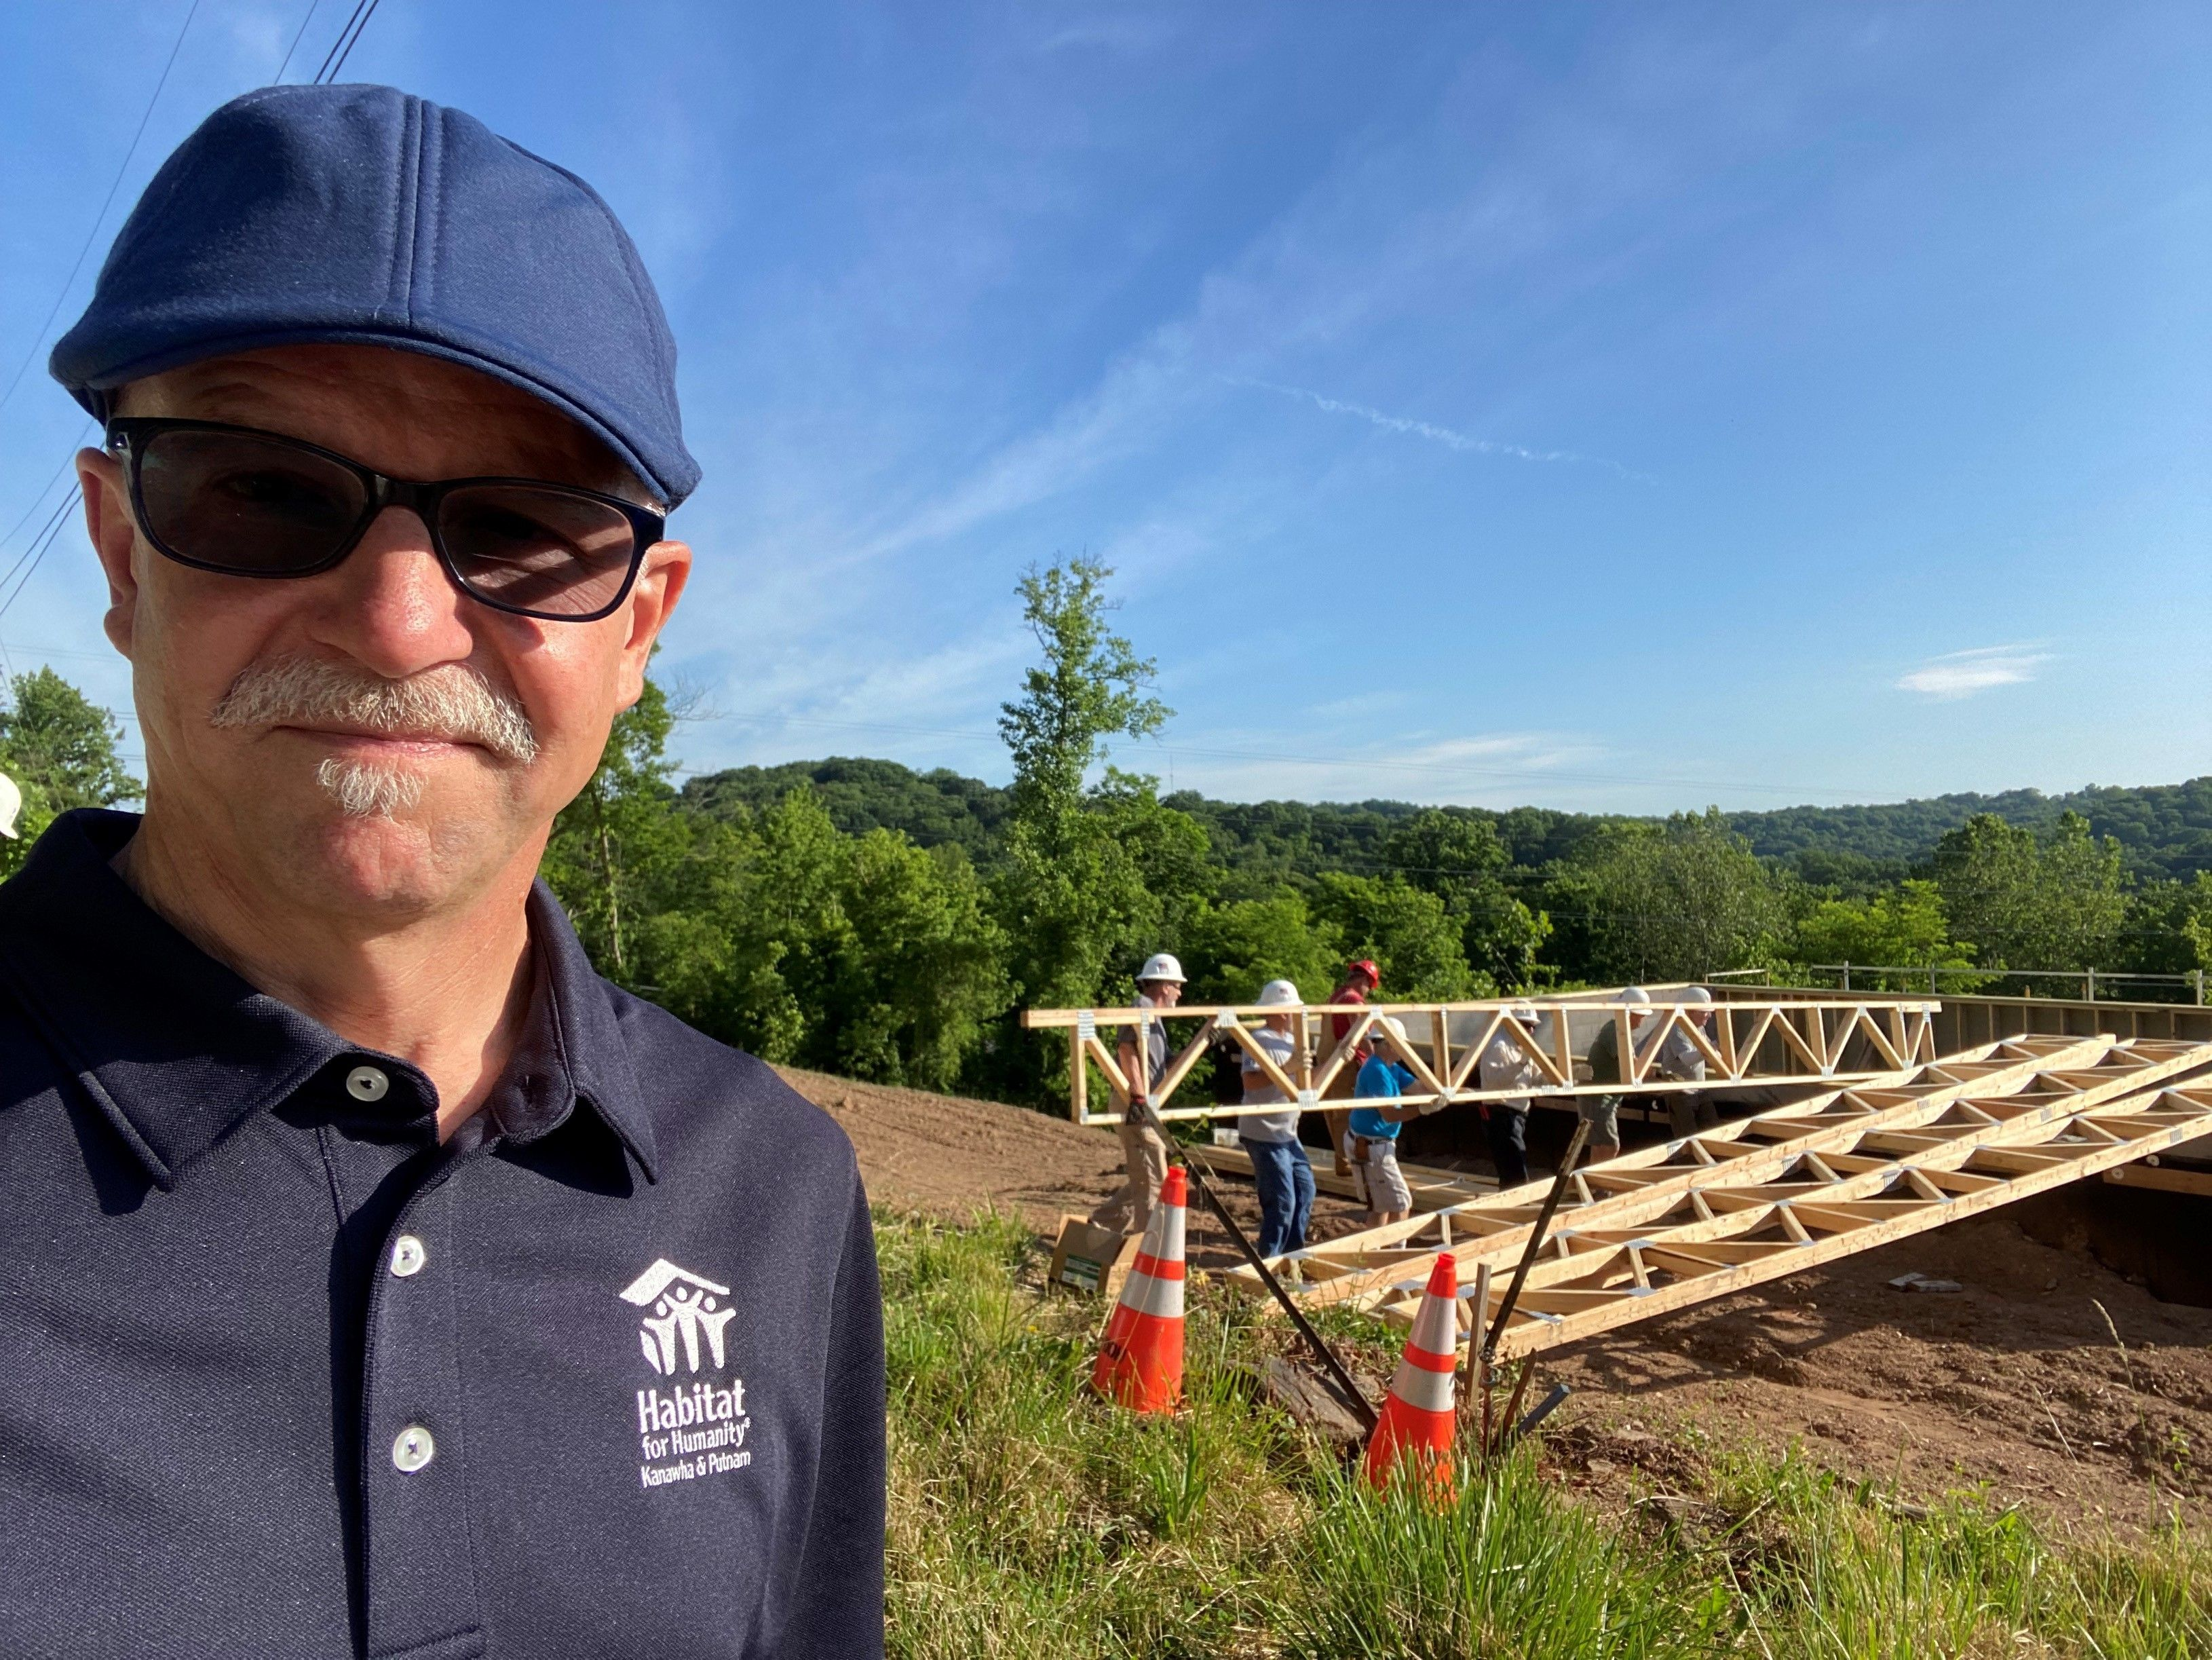 New Habitat for Humanity Kanawha & Putnam director to pick up pieces from COVID-19 crisis